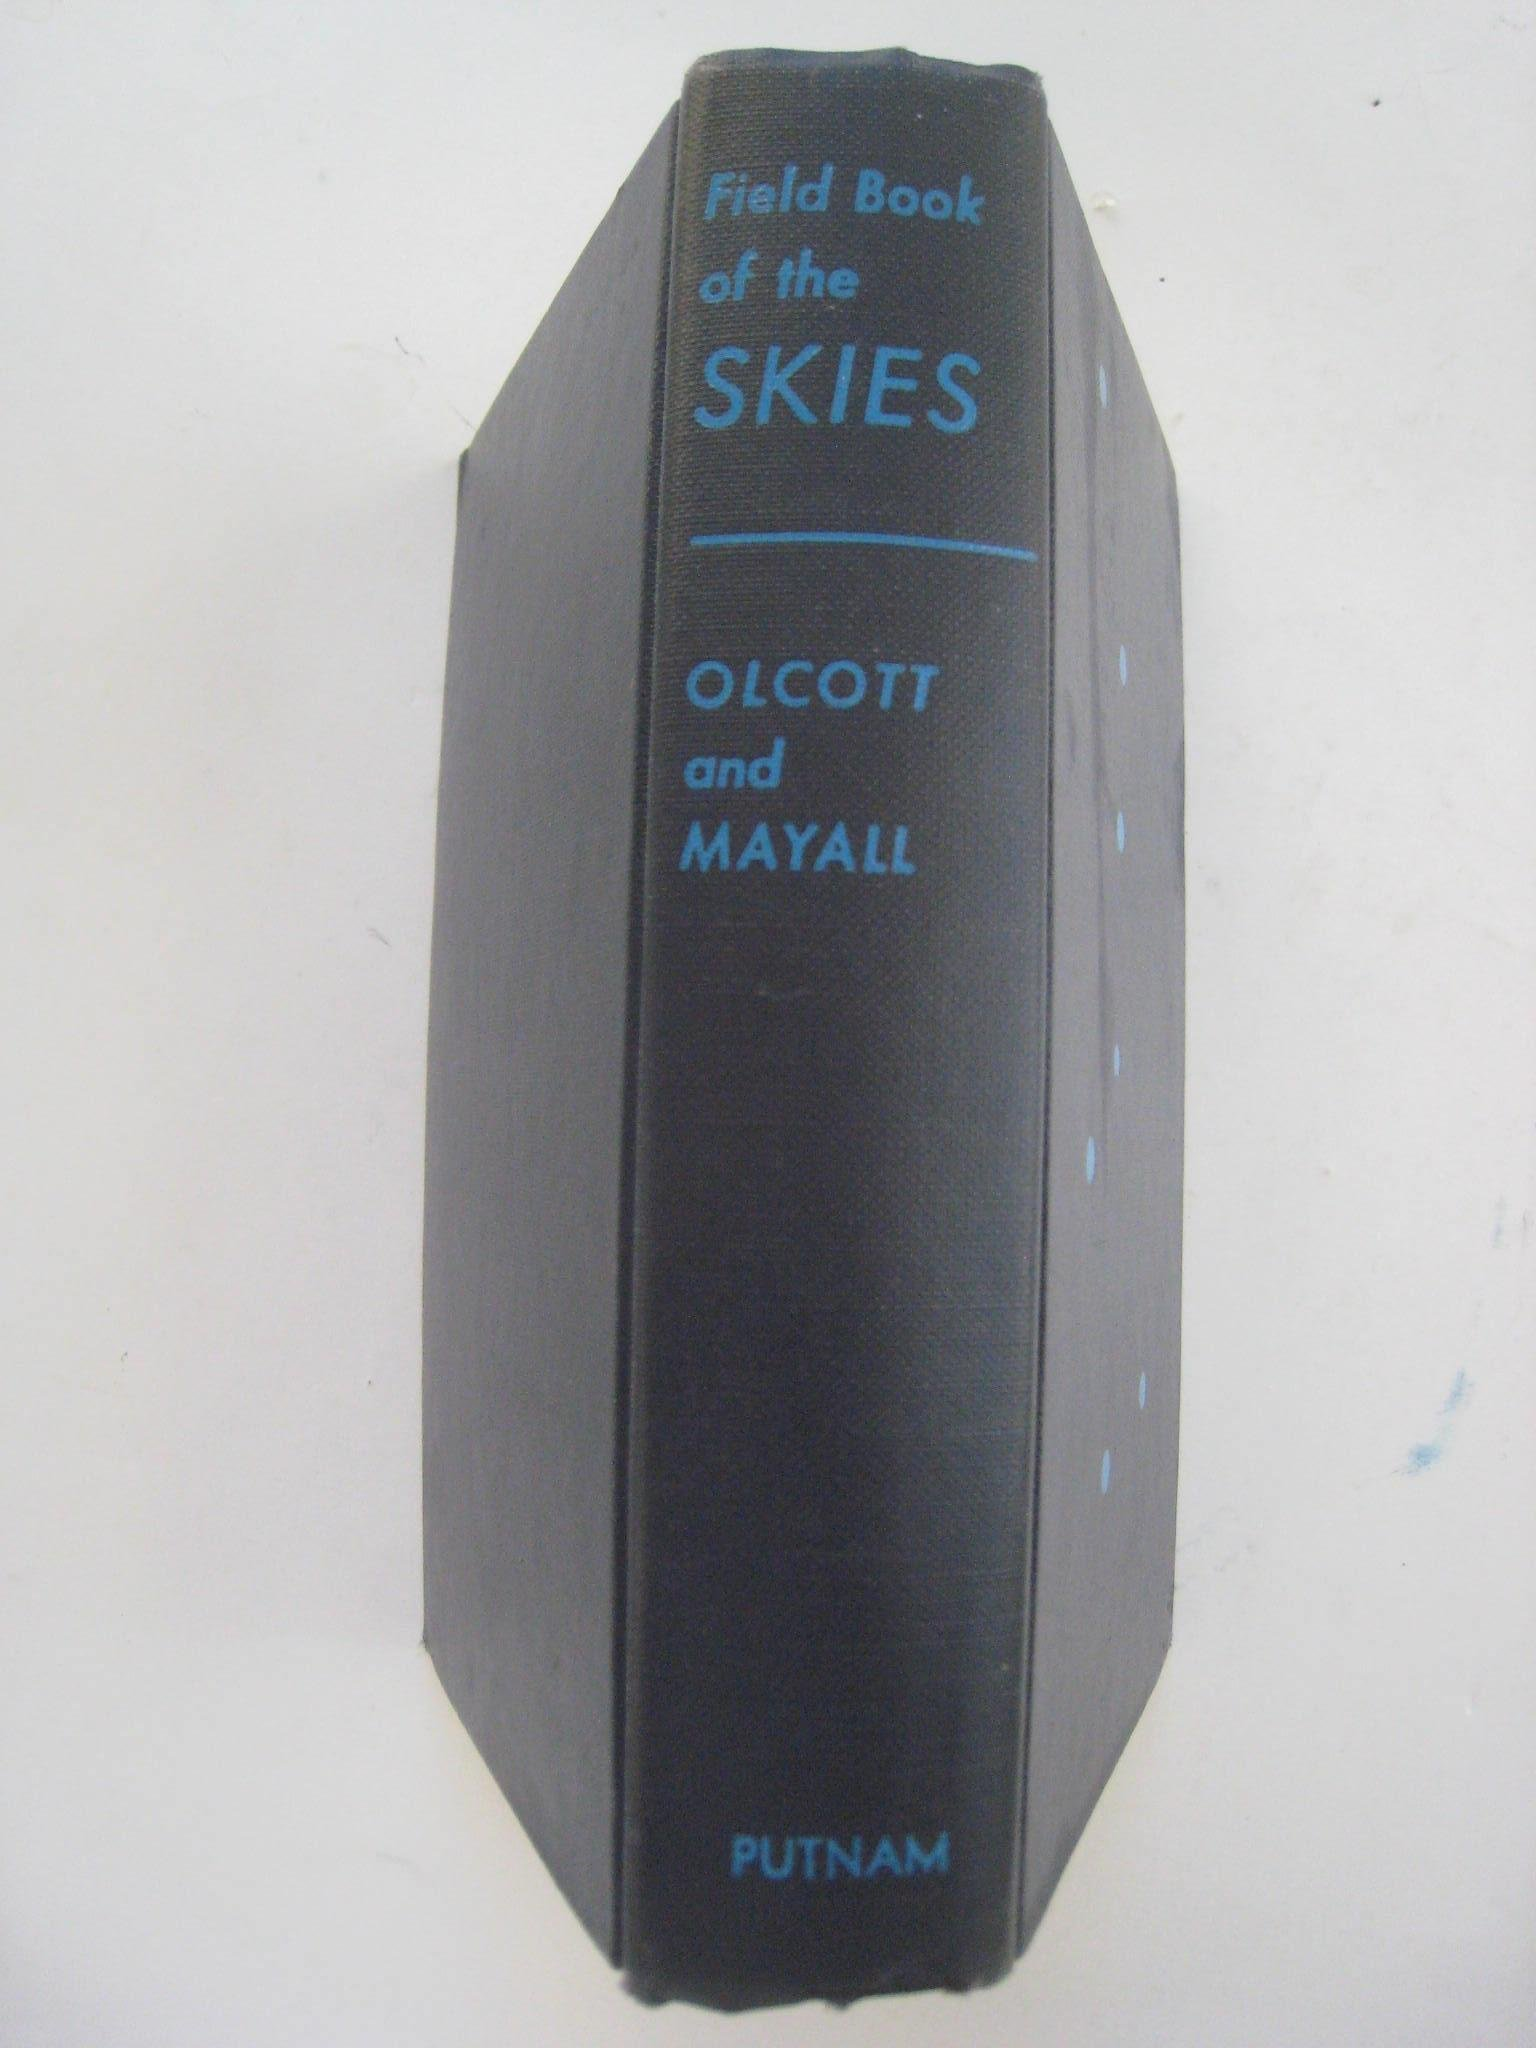 Olcott's Field Book of the Skies, Mayall, Newton